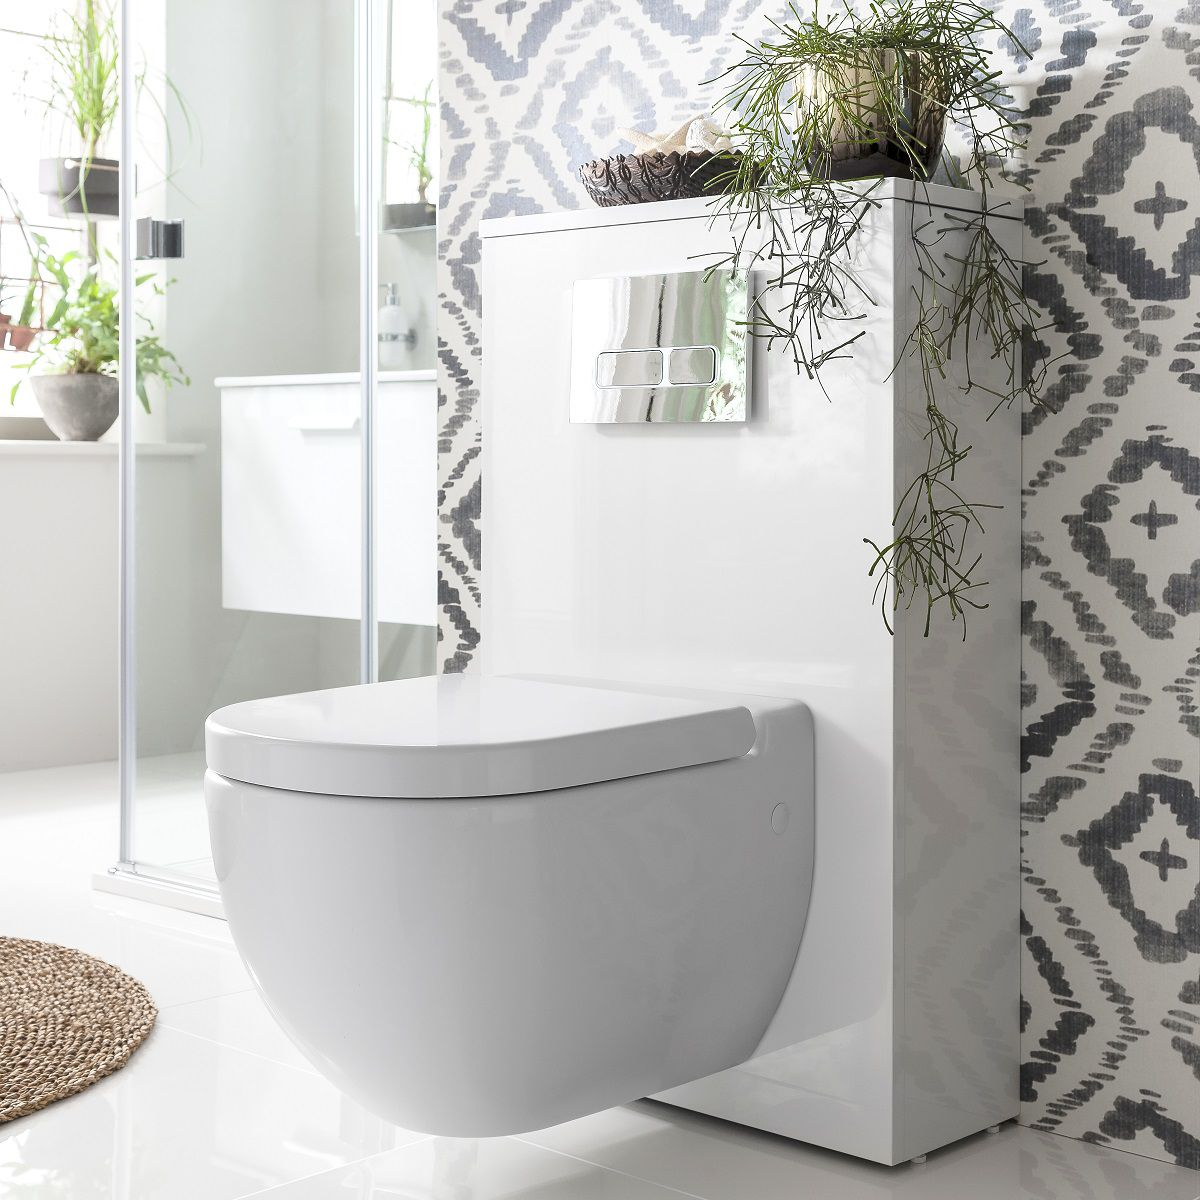 image example of a modern contemporary toilet